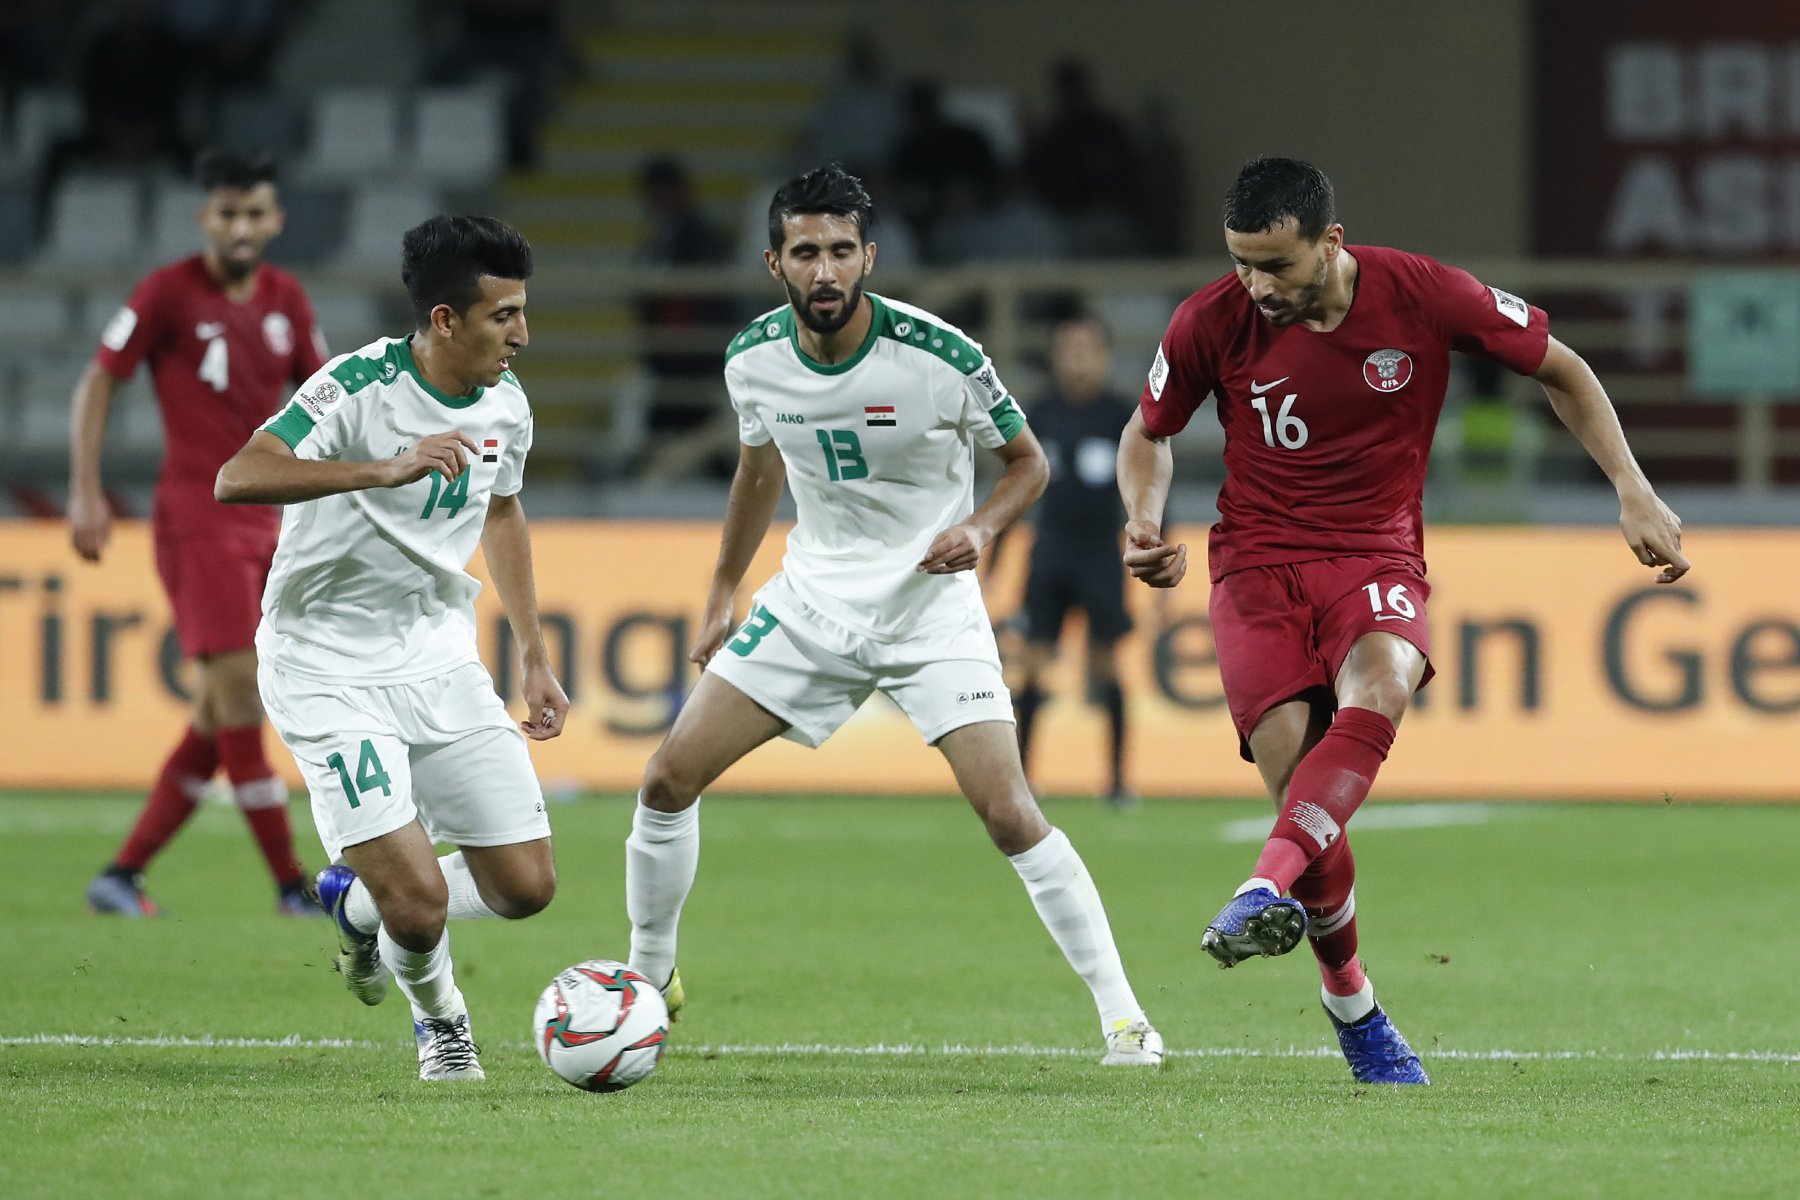 Qatar's midfielder Boualem Khoukhi, right, kicked the ball past Iraq's Midfielder Amjed Attwan, left, and Iraq's Midfielder Bashar Resan, during the AFC Asian Cup round of 16 soccer match between Qatar and Iraq at Al Nahyan Stadium in Abu Dhabi, United Arab Emirates, Tuesday, Jan. 22, 2019. (AP Photo/Hassan Ammar)